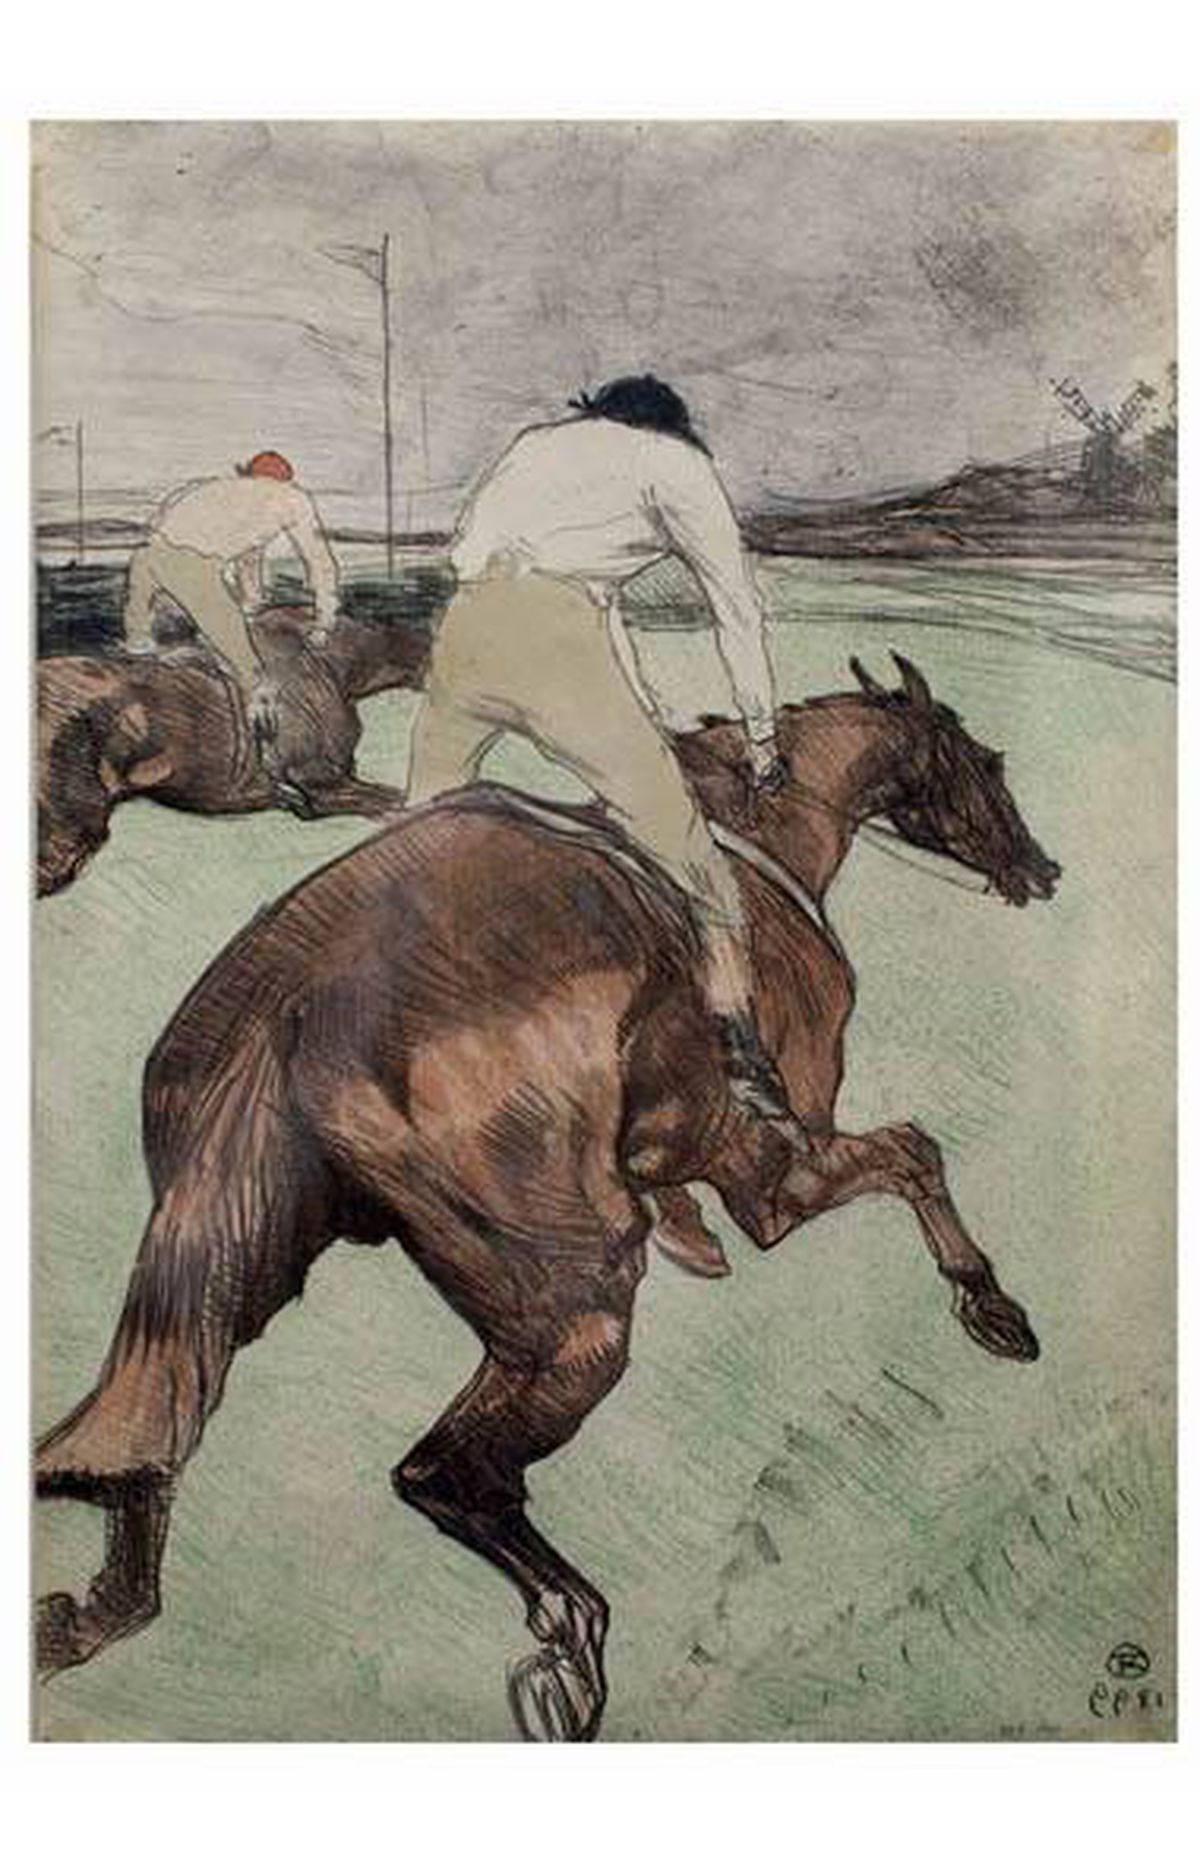 'Le Jockey' by artist Toulouse-Lautrec. Part of a collection of rare and valuable posters gifted to the AGO, photographed on February 18, 2011.